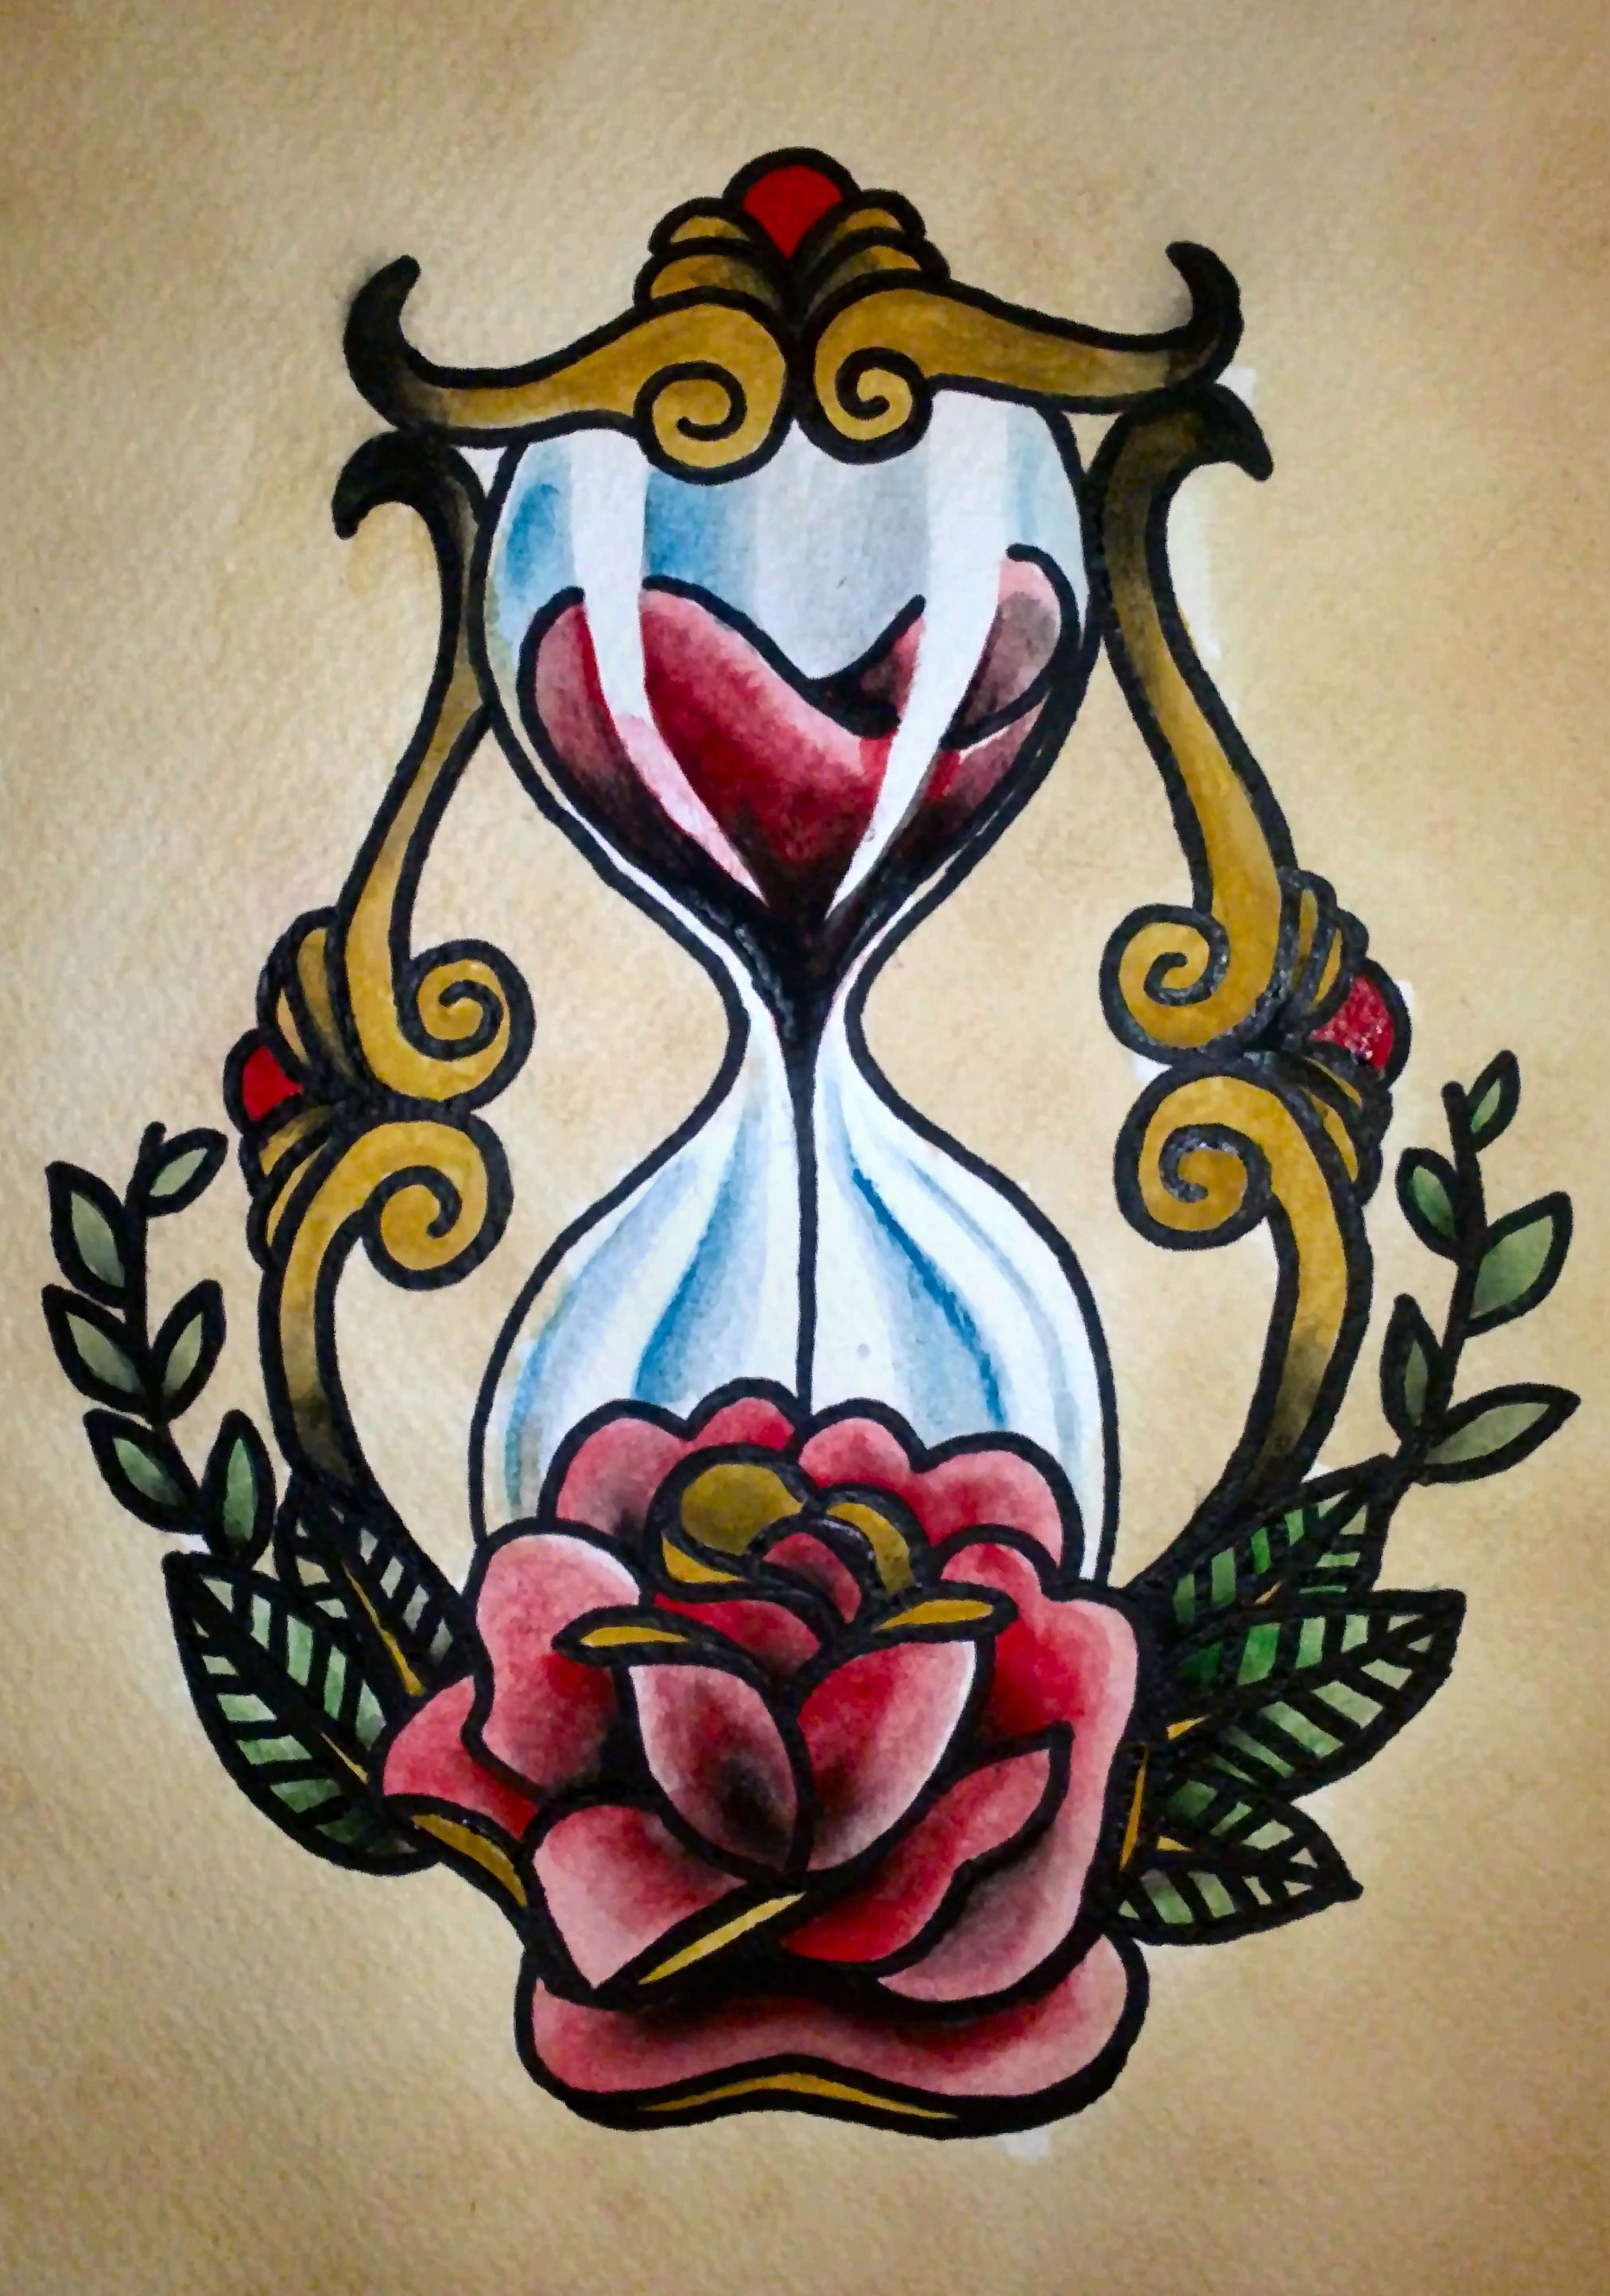 American Traditional Hourglass more ideas for my sleeve